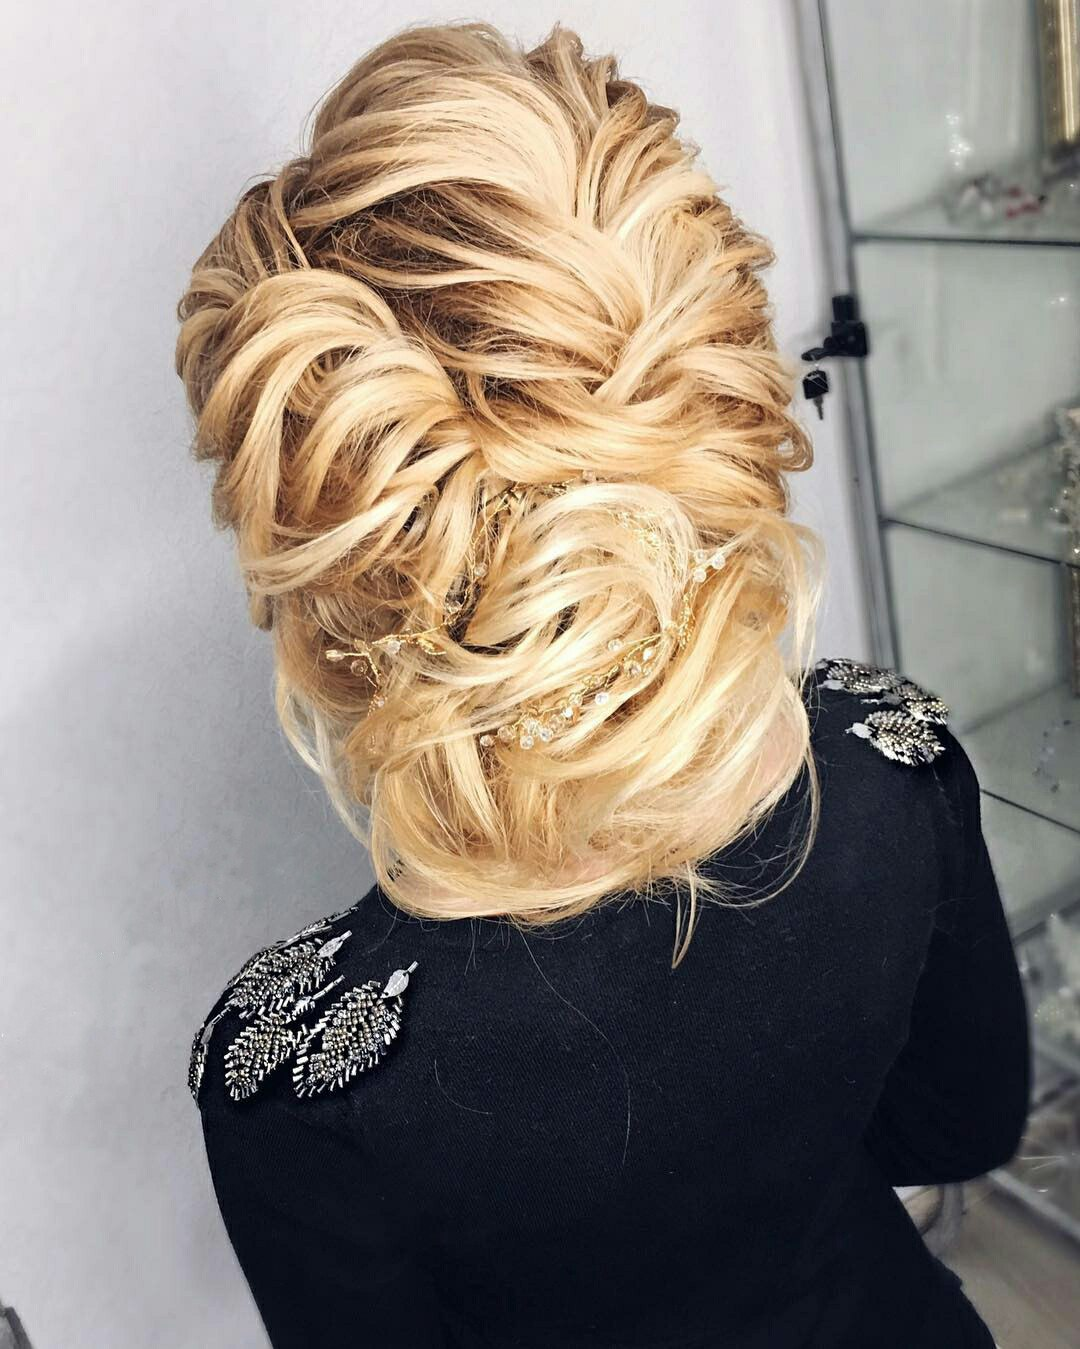 Greek hairstyles grecian hairstyle ideas for women ladylife the band for the greek hairstyle is a universal thing it looks like a bandage but it literally sticks to the head it is also can be decorated with solutioingenieria Gallery